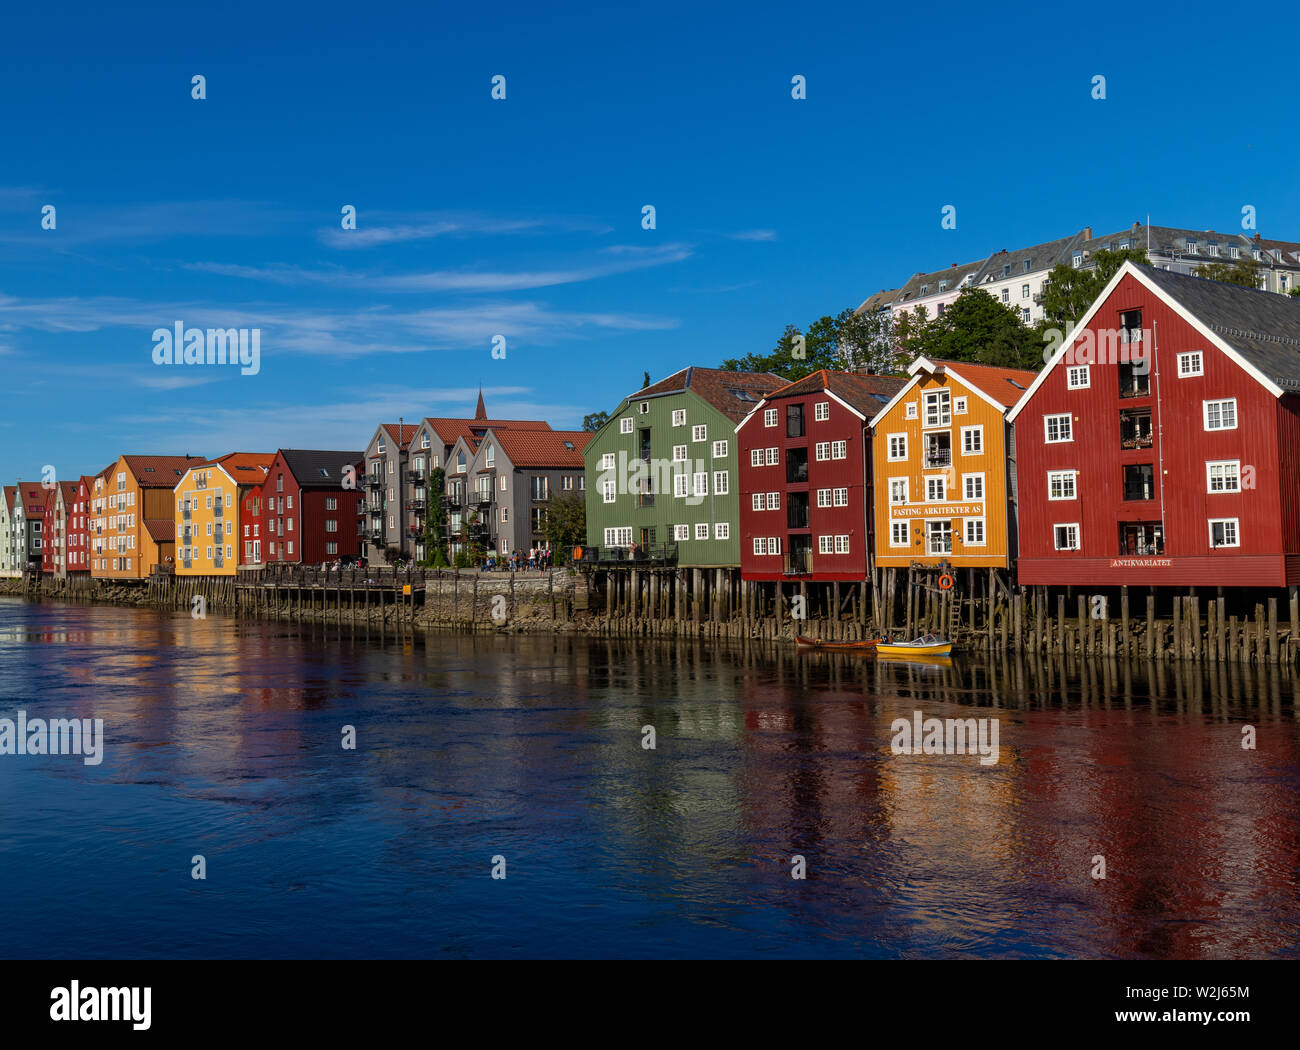 River Nidelva, Trondheim, Norway Stock Photo